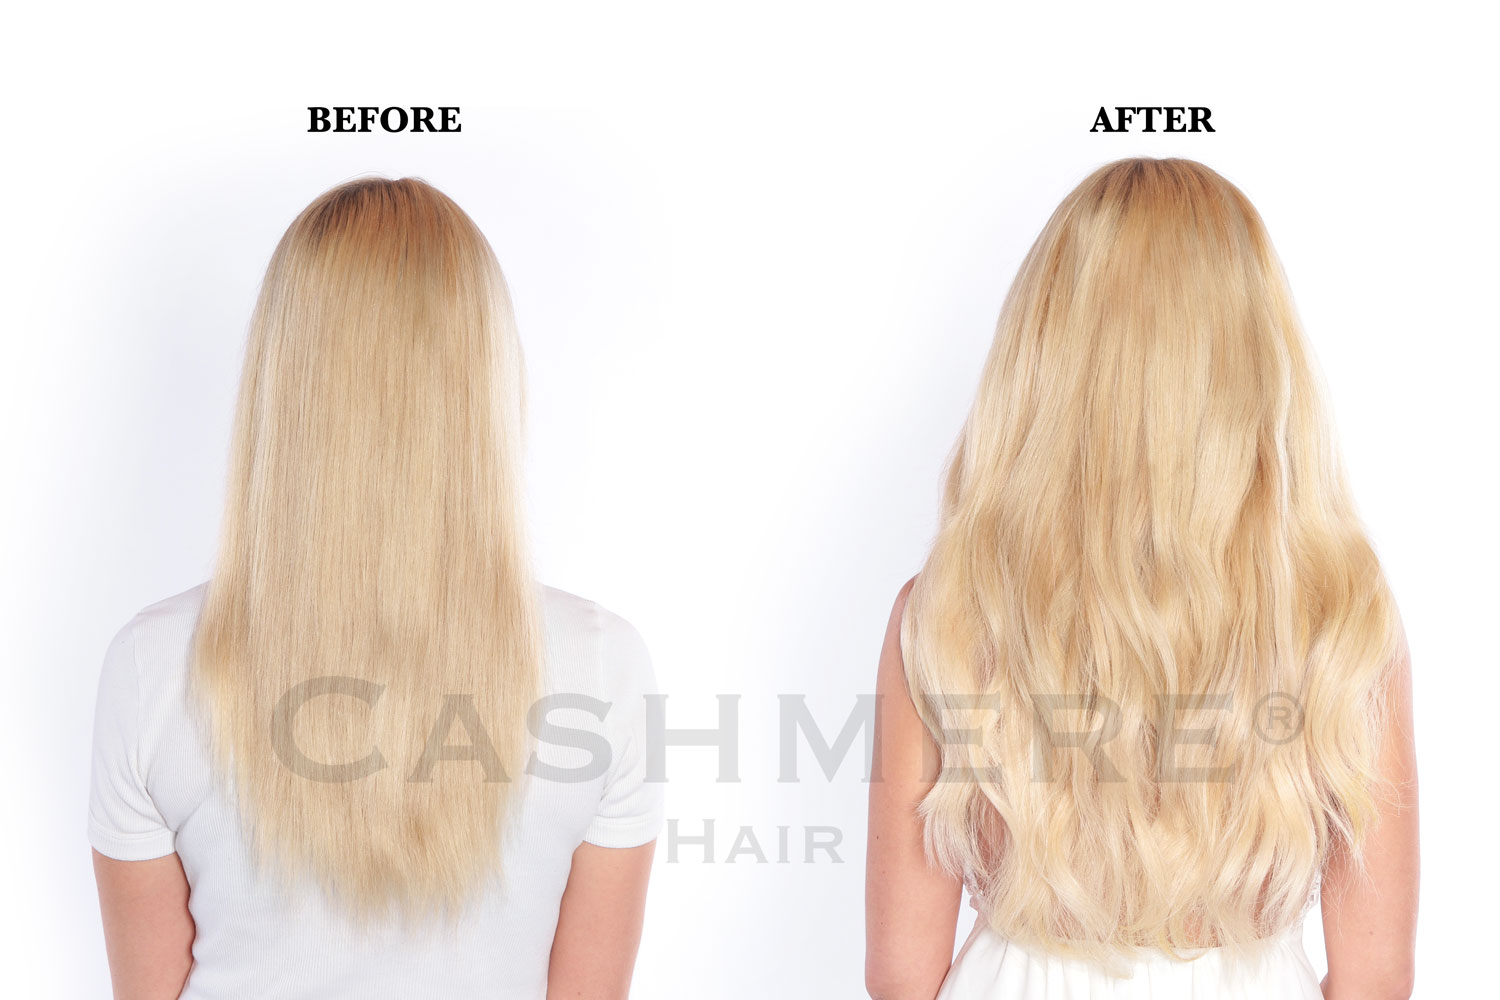 before-after-back-claudia1.jpg